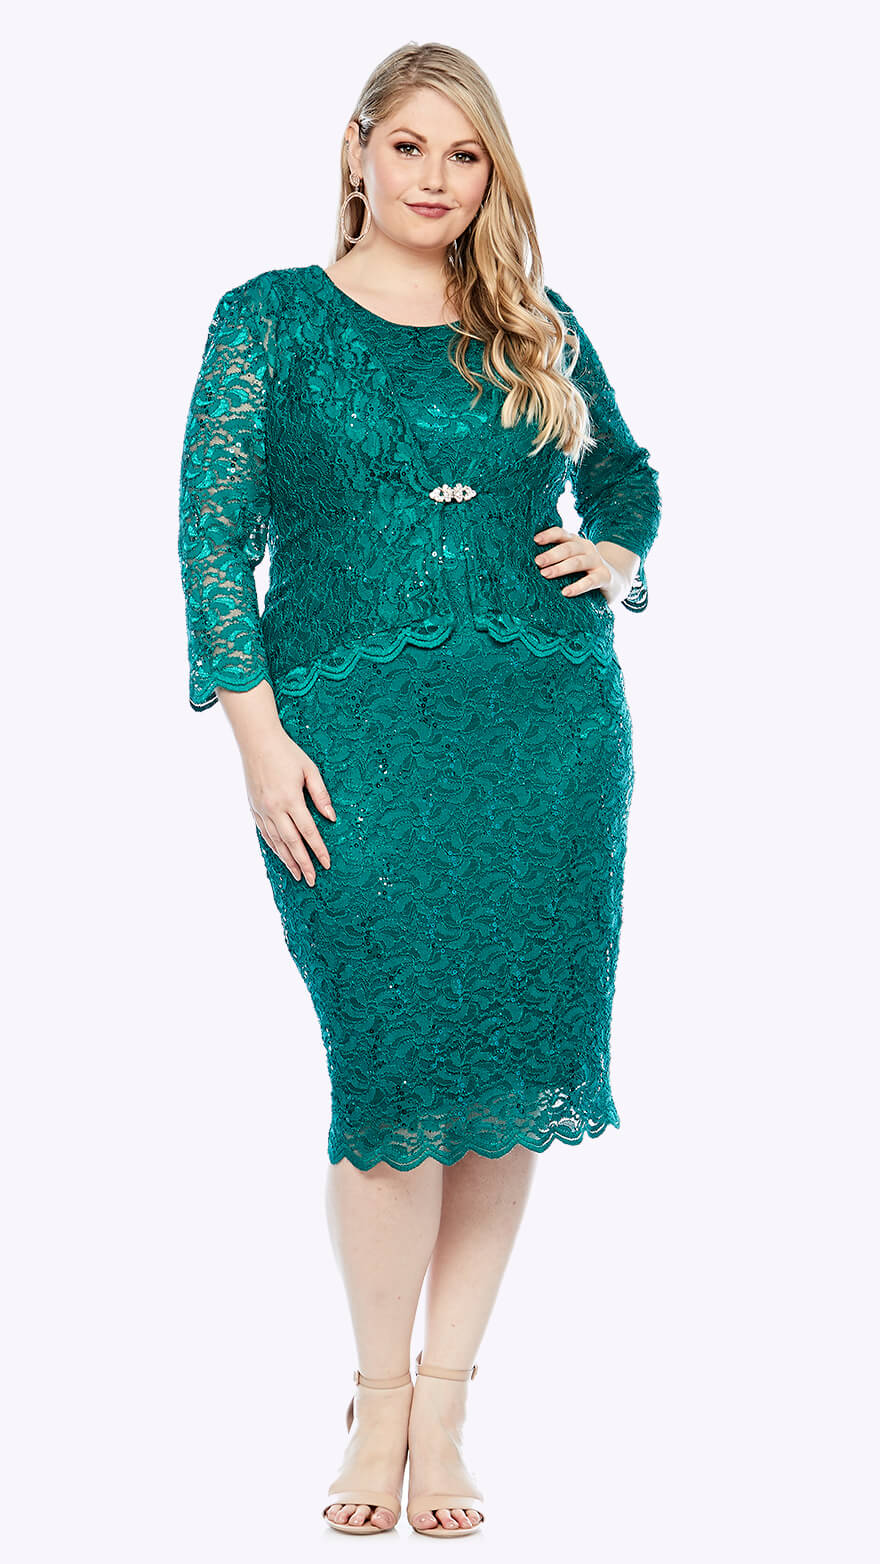 LJ0378 Mid-length stretch embroidered sequin dress with scallop hemline and matching 3/4 length jacket